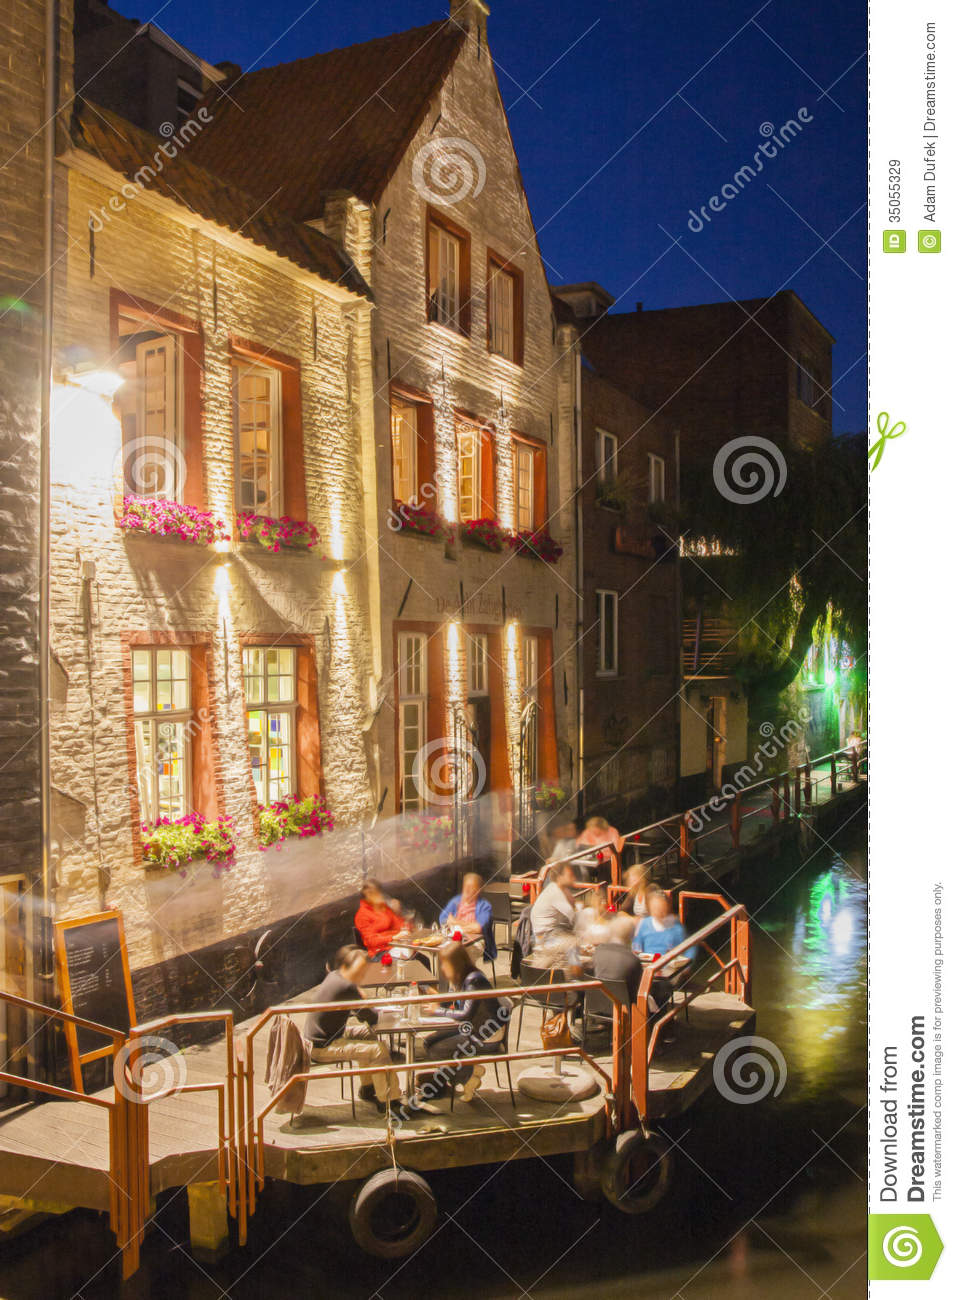 Ghent Royalty Free Stock Images - Image: 35055329  Ghent Royalty F...